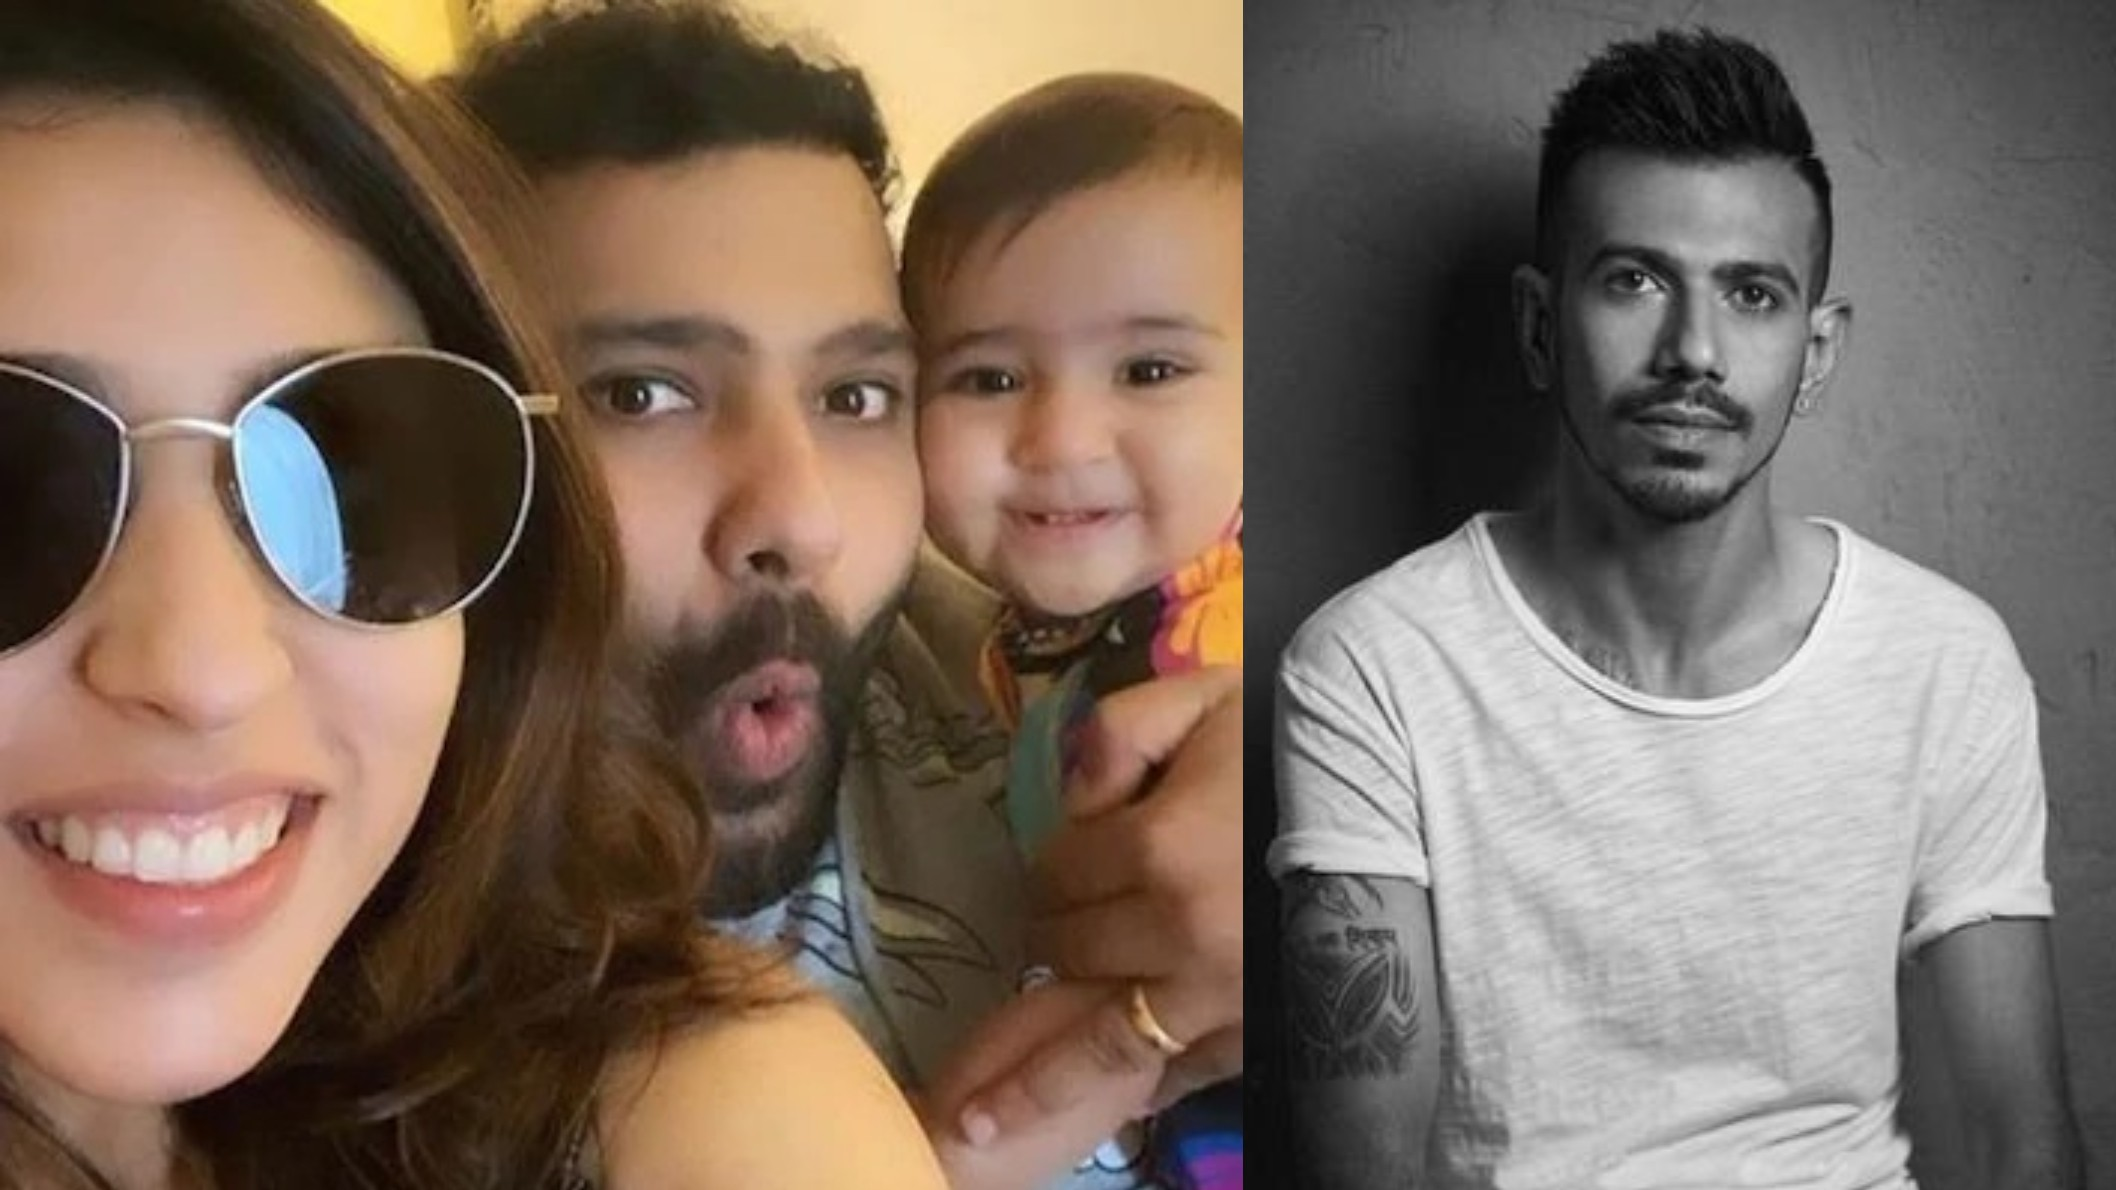 Ritika gives a cheeky reply to Yuzvendra Chahal, who objects to being removed from family photo